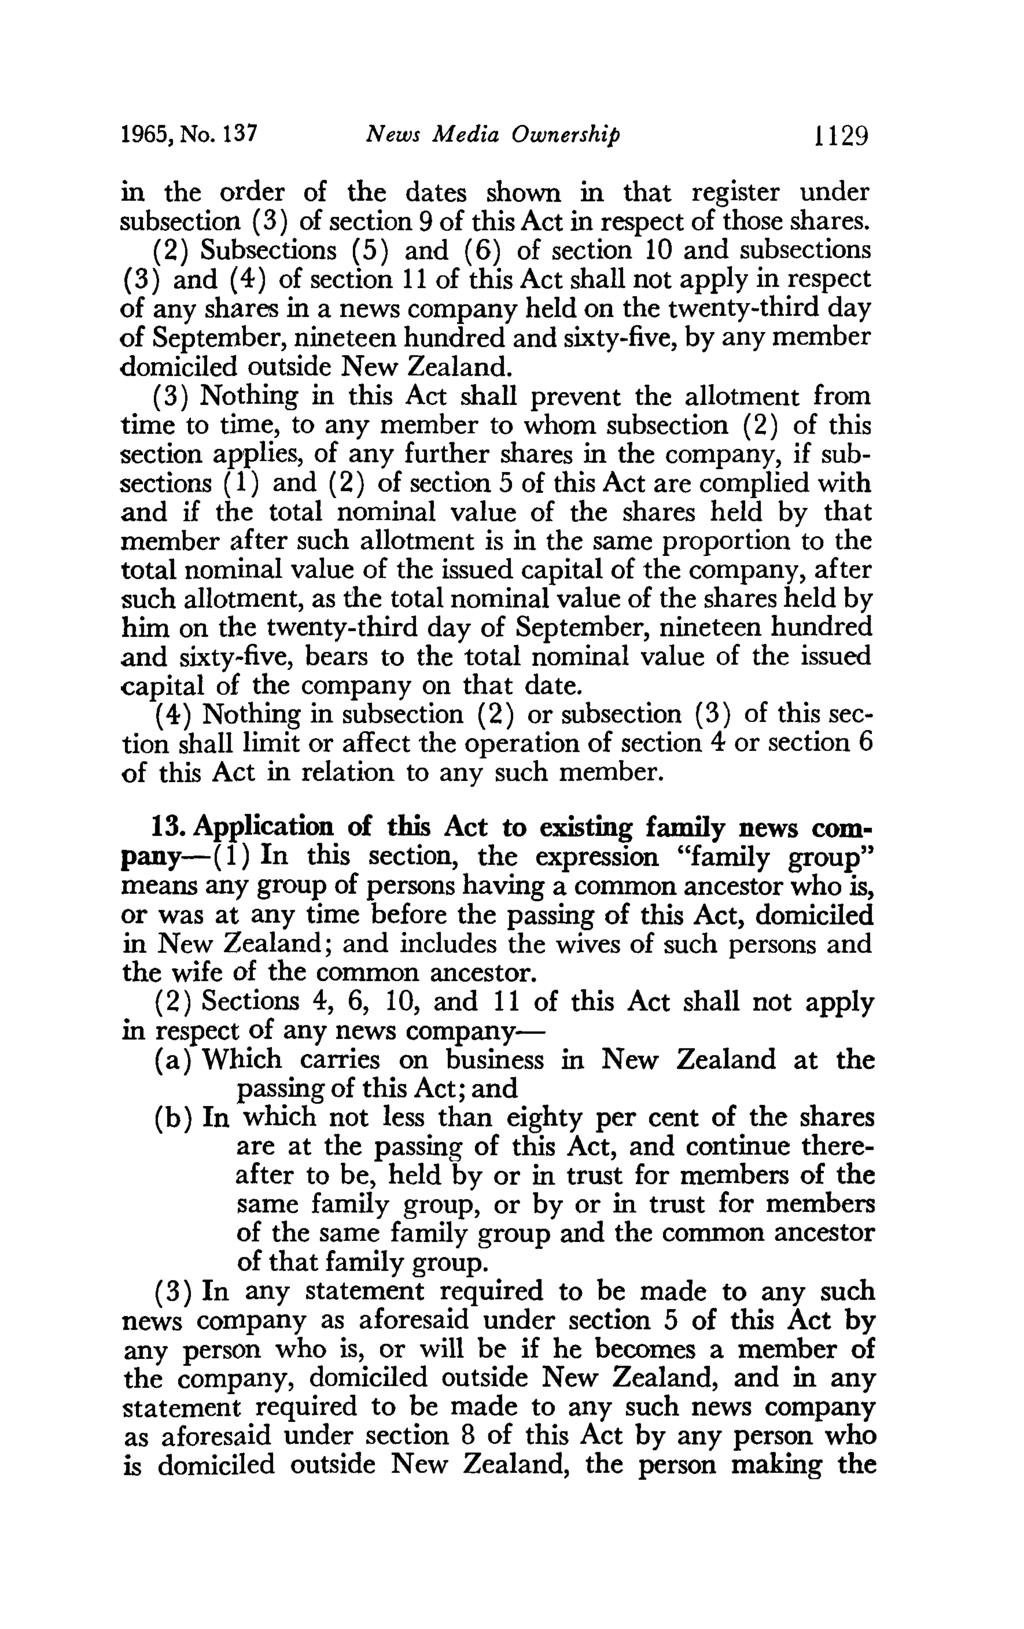 1965, No. 137 News Media Ownership 1129 in the order of the dates shown in that register under subsection (3) of section 9 of this Act in respect of those shares.